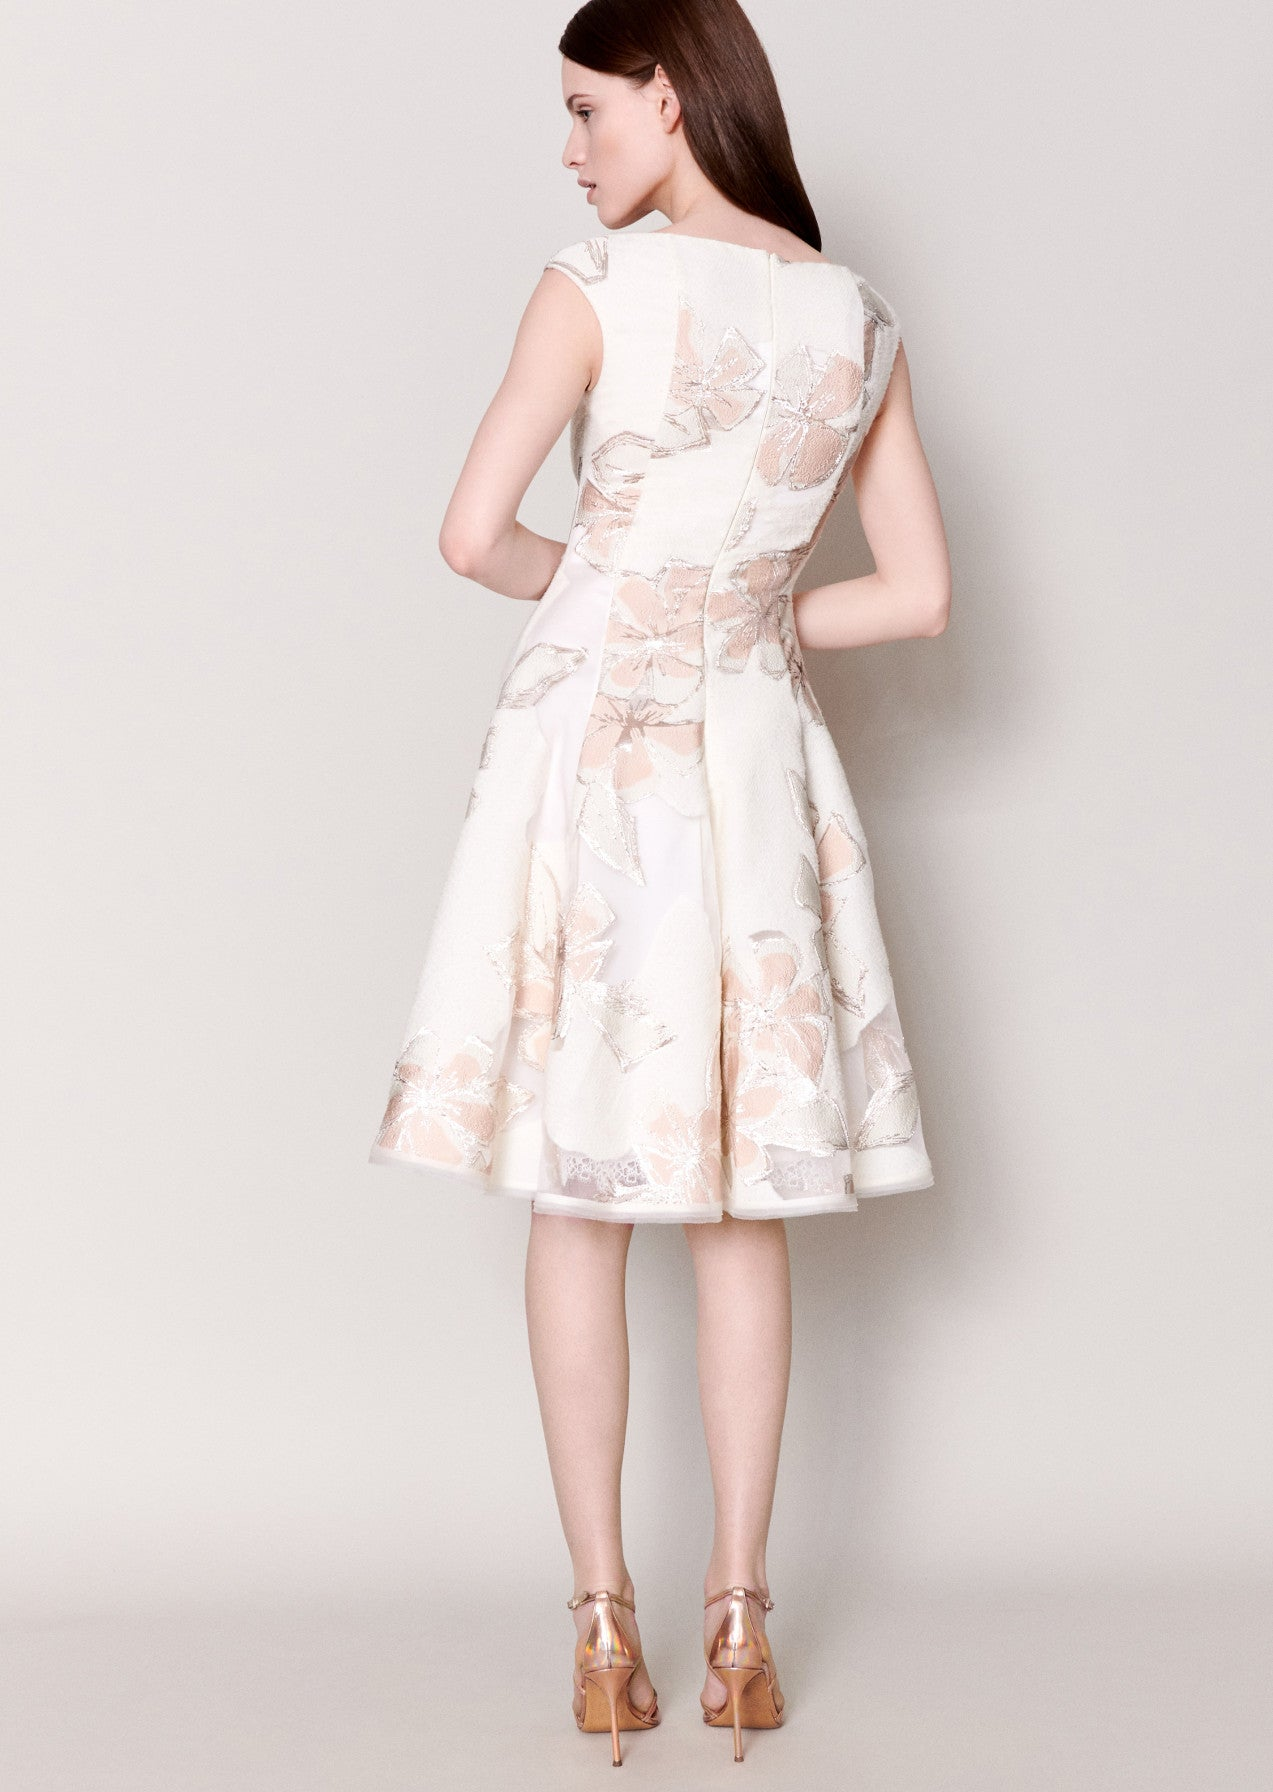 Cocktailkleid Korbut21 in Offwhite